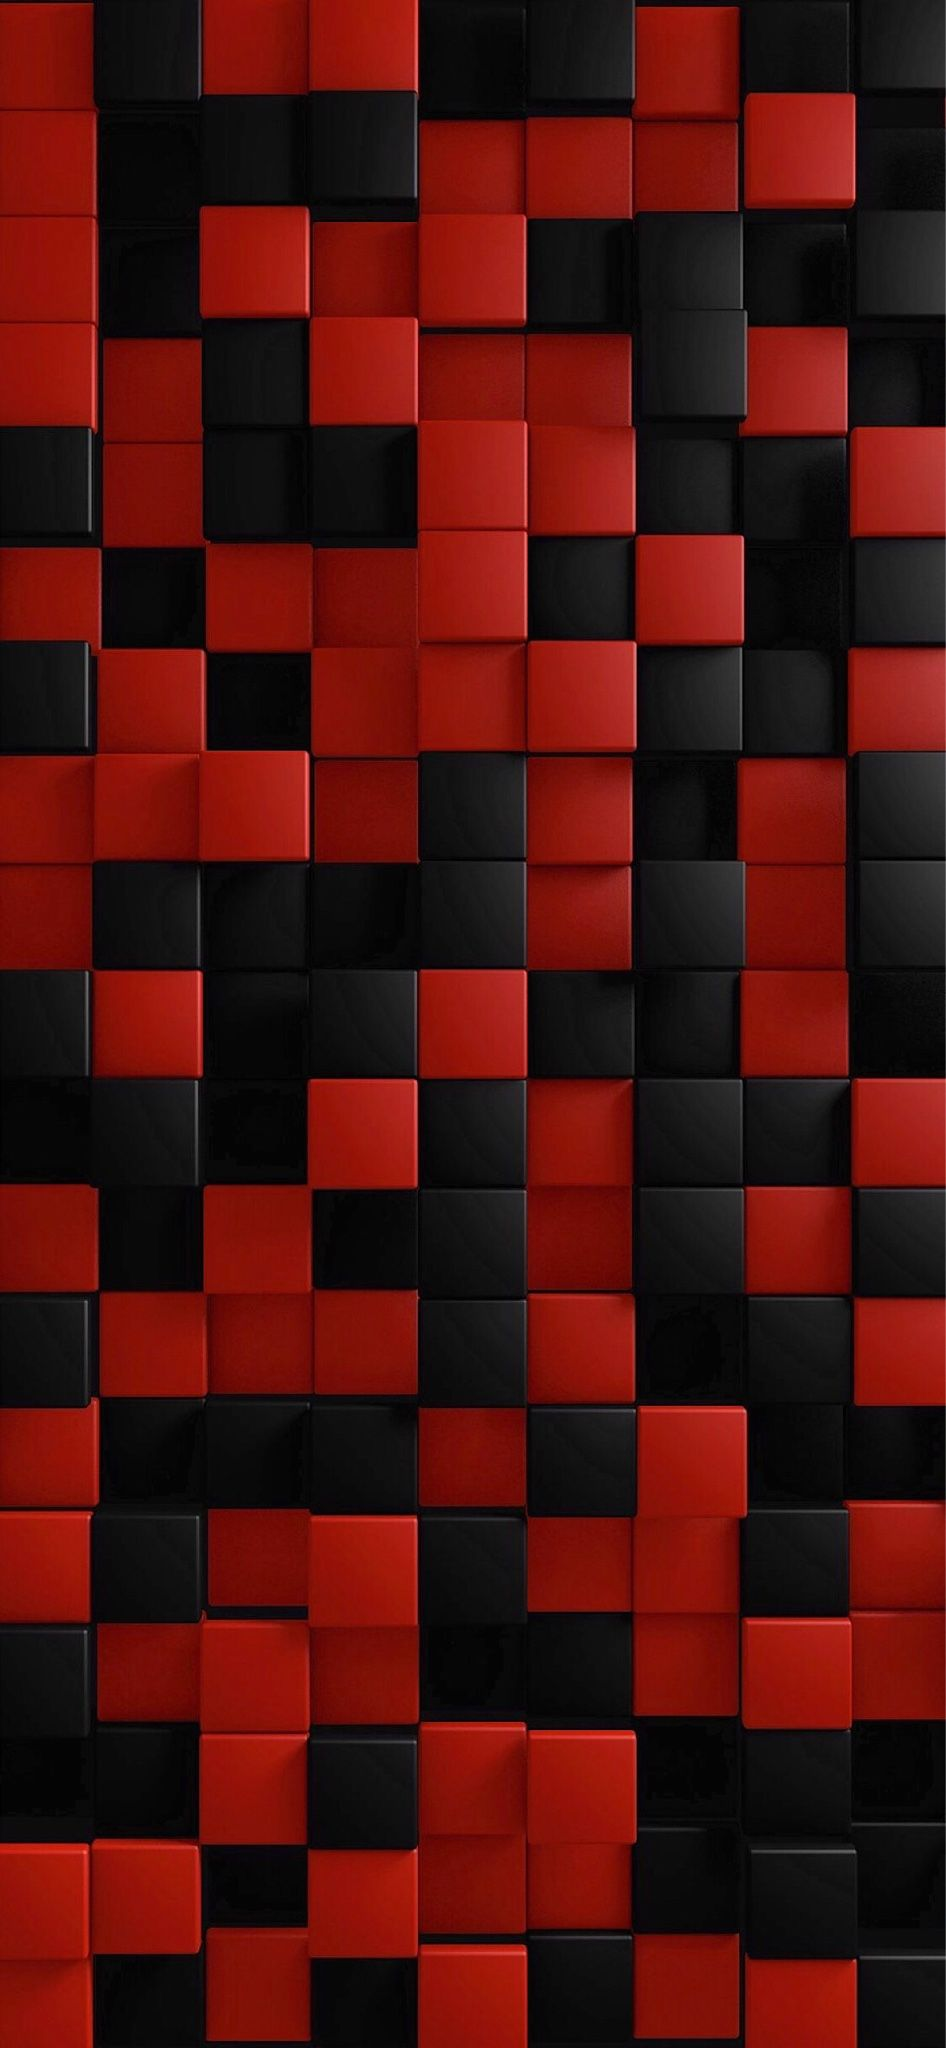 Red And Black Cube Black Wallpaper Red And Black Wallpaper Cellphone Wallpaper